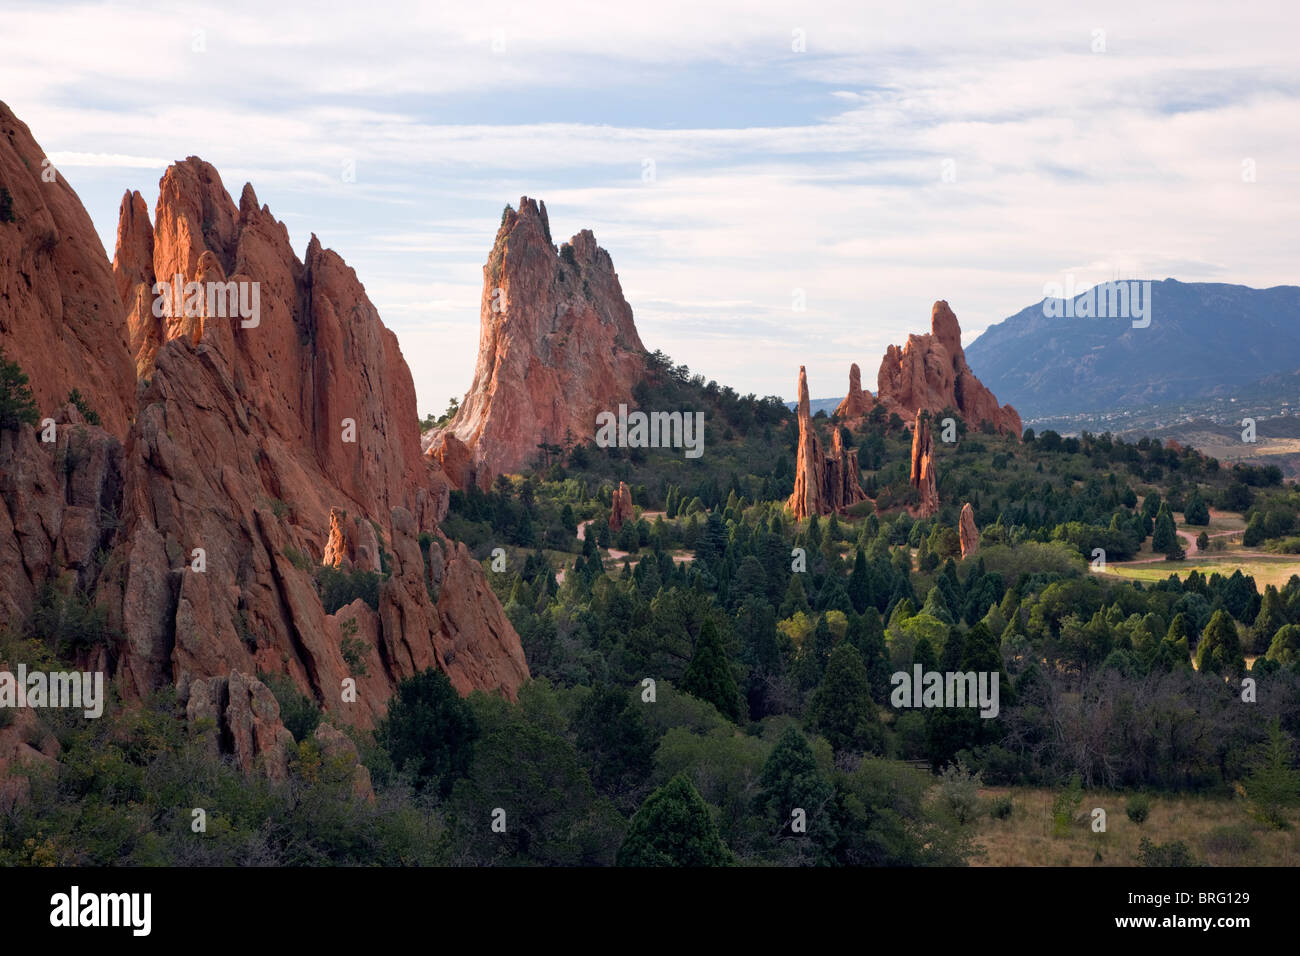 Cathedral Spires and Three Graces, Garden of the Gods, Colorado Springs, Colorado, USA - Stock Image